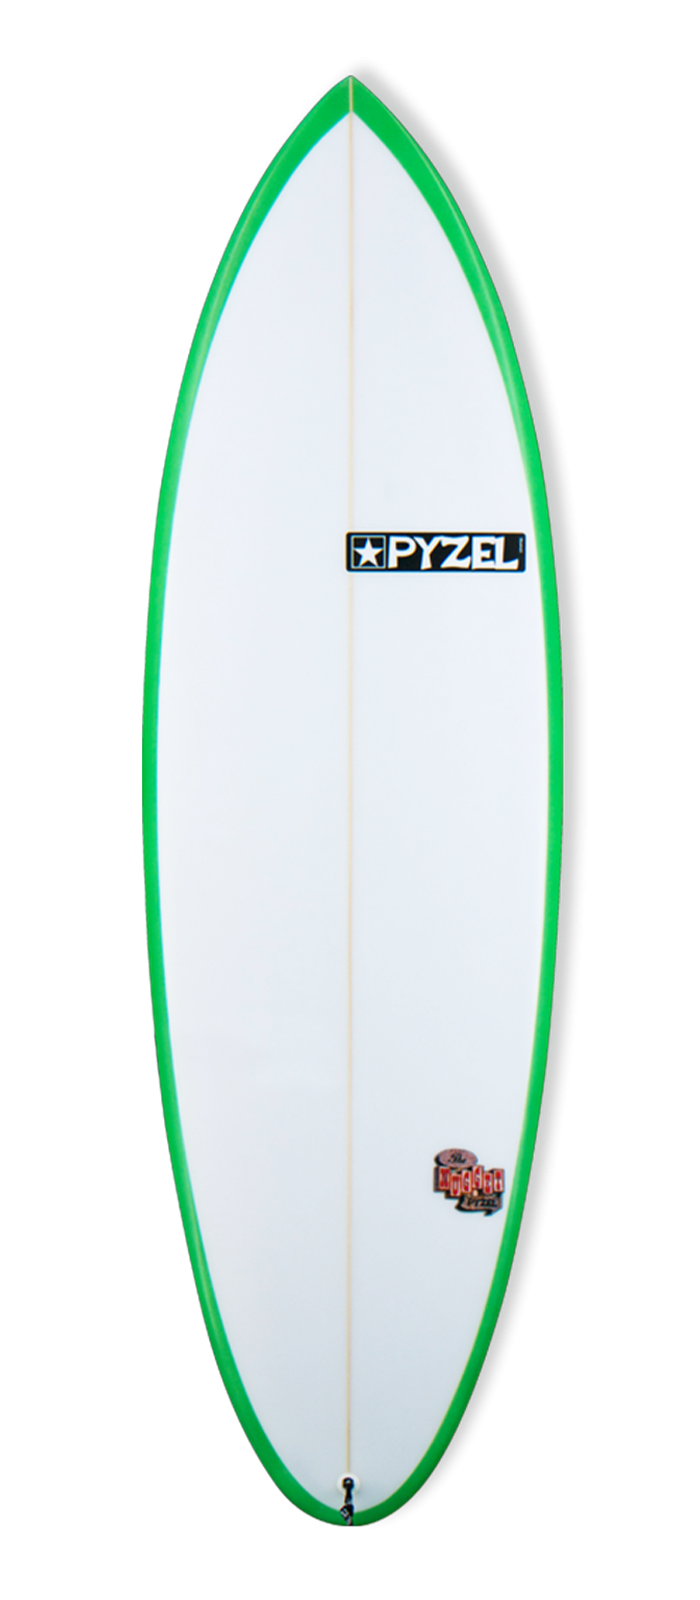 THE NUGGET surfboard model